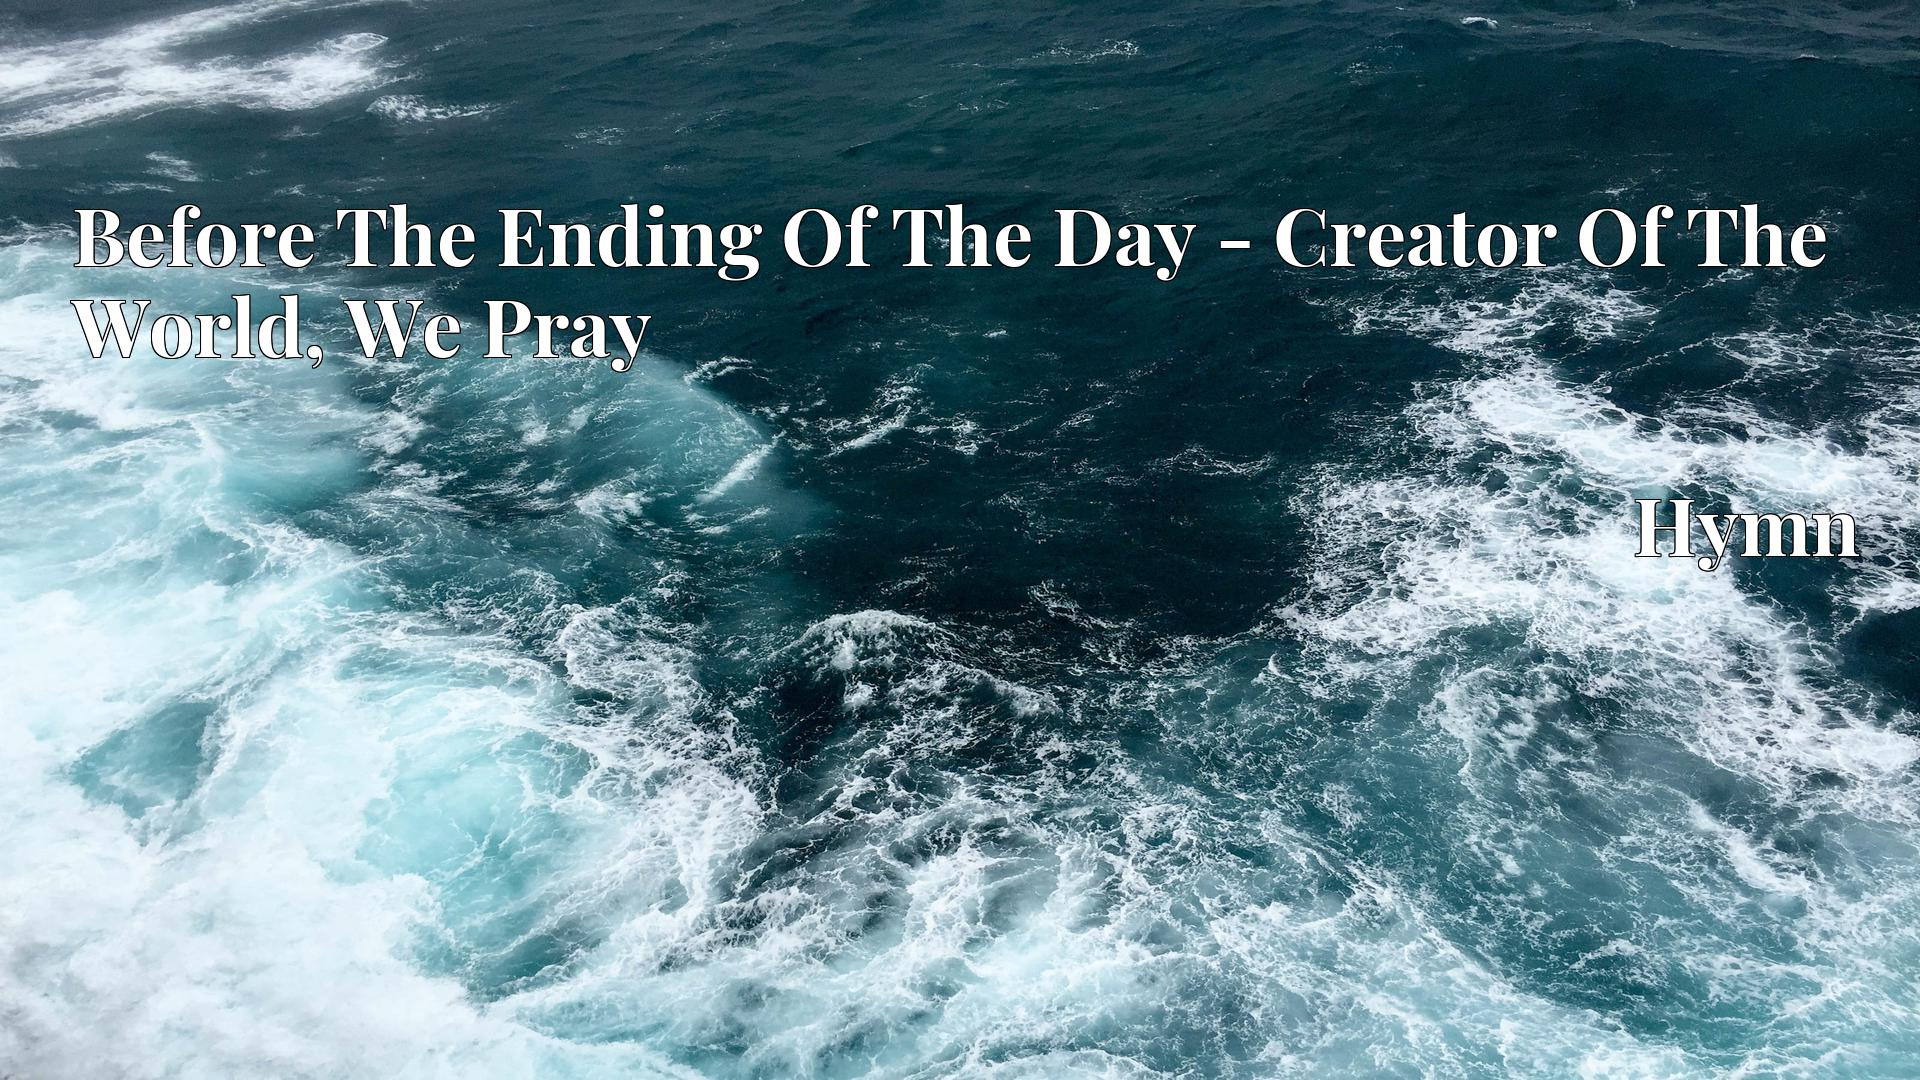 Before The Ending Of The Day - Creator Of The World, We Pray Hymn